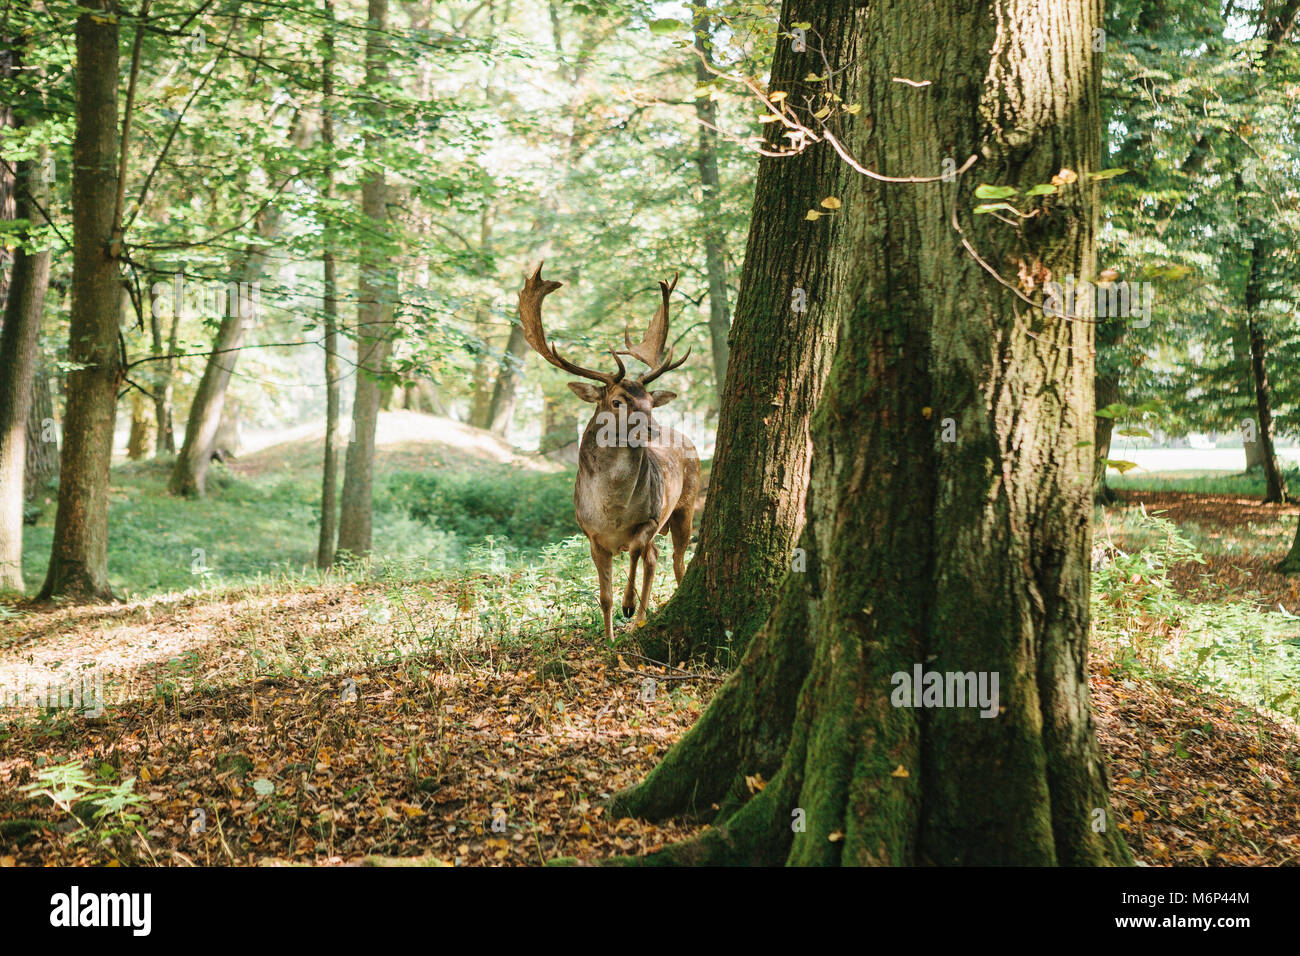 Deer with branched horns stands on a hill in an autumn forest among trees. Stock Photo